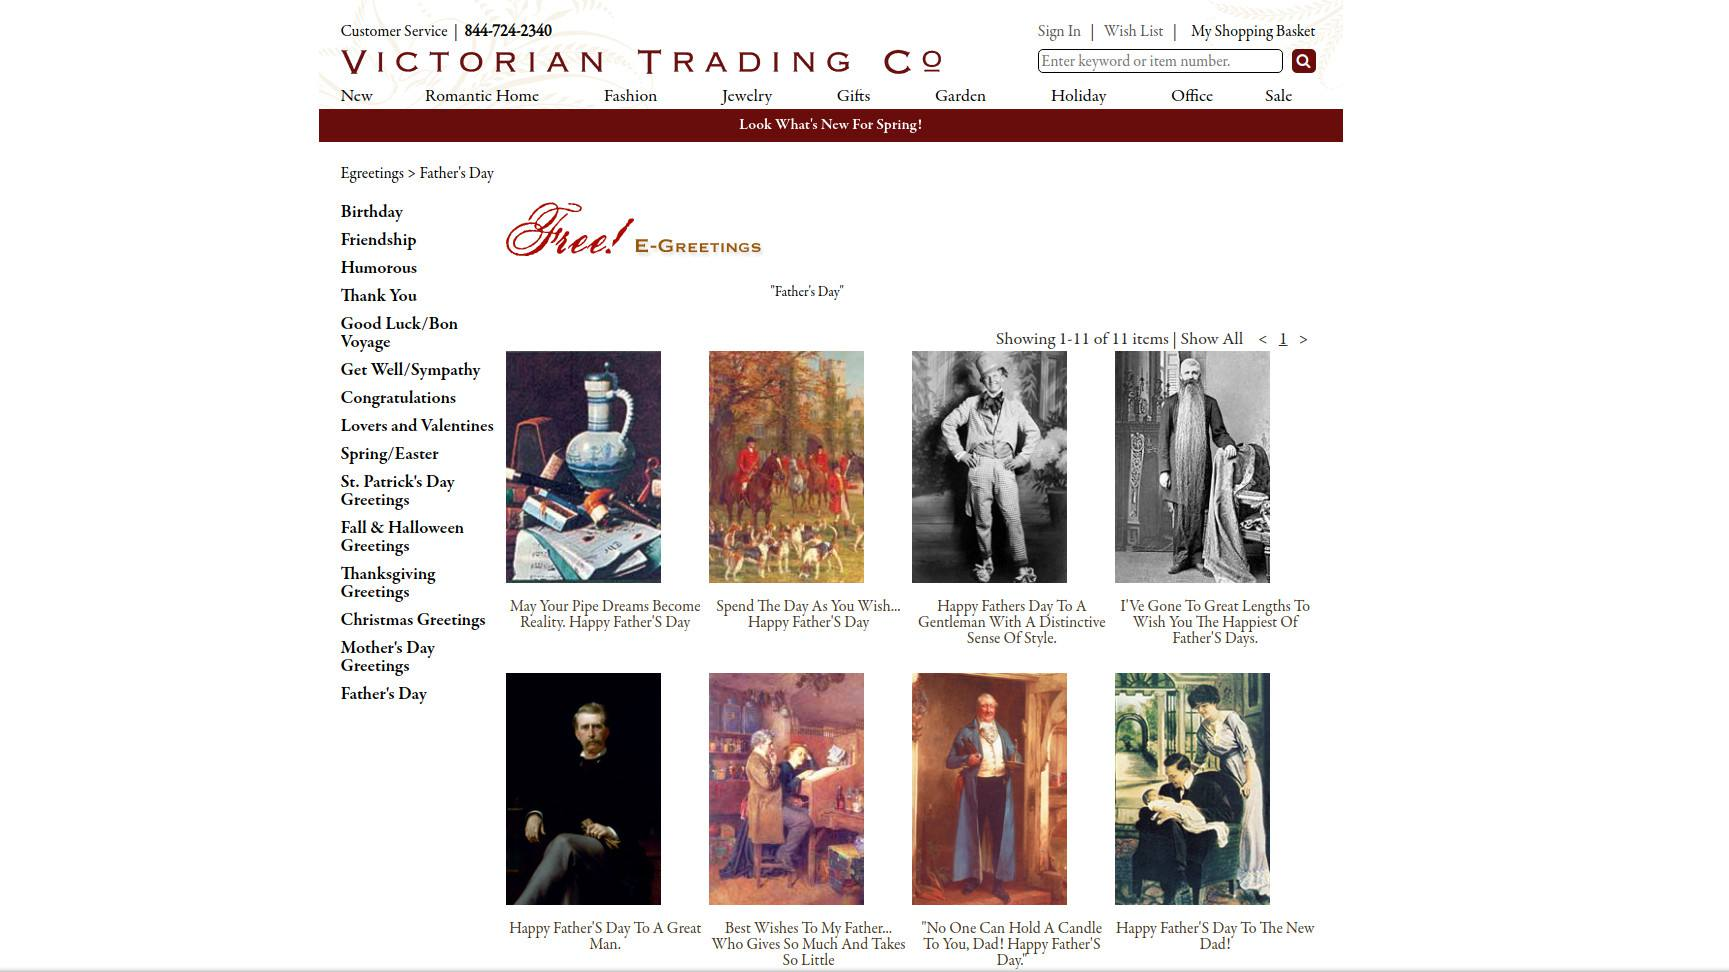 Victorian Trading Co. web page